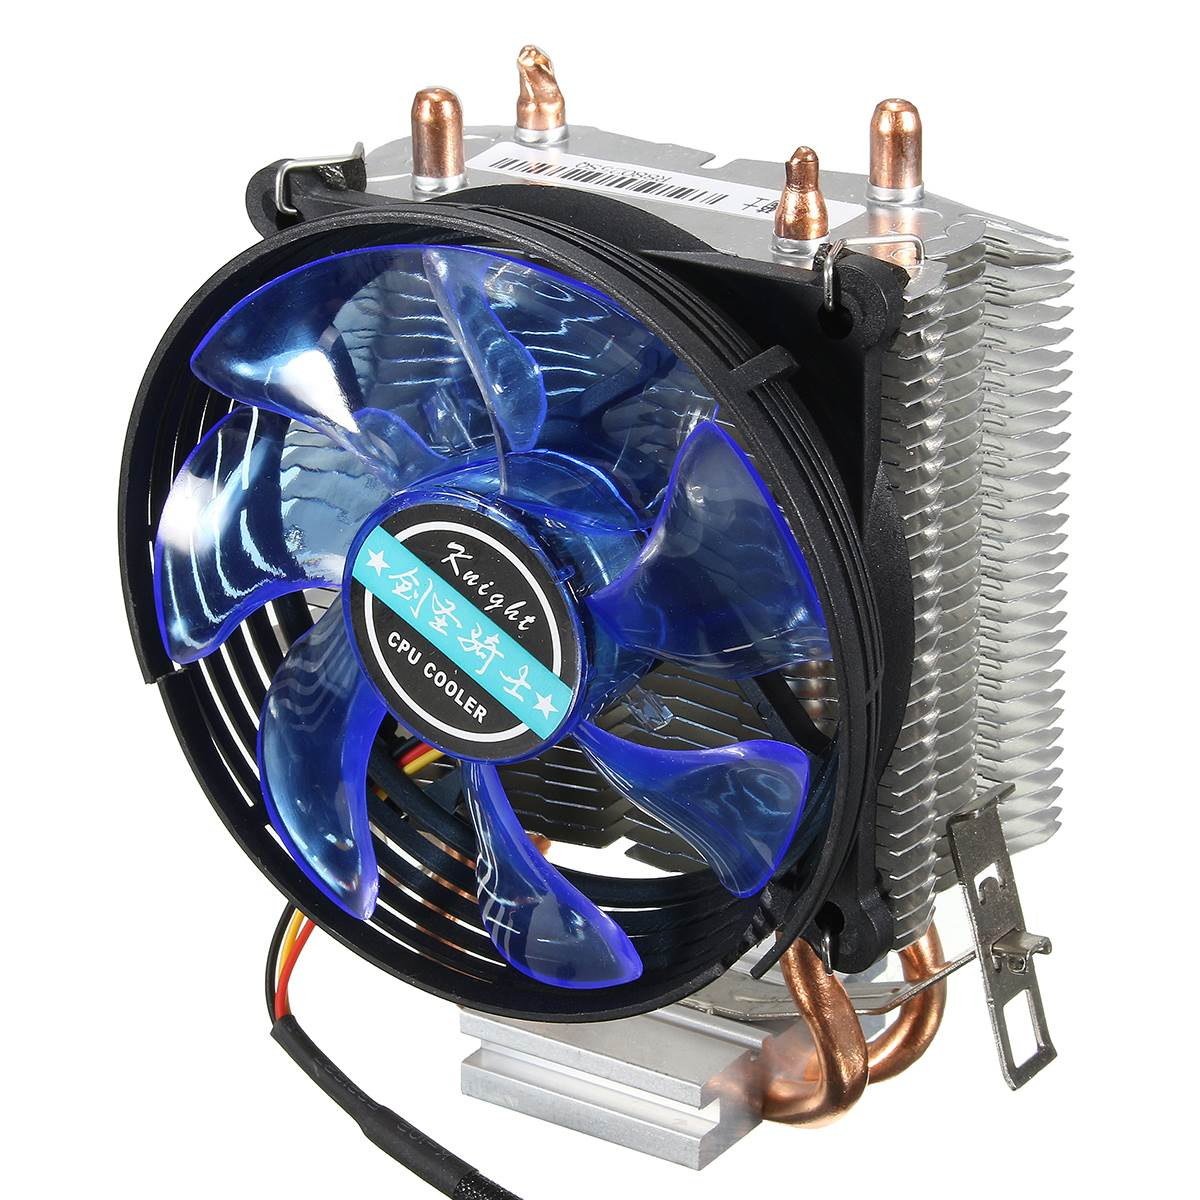 95x95x25mm LED Cooler Cpu Fan Heatsink Copper for Intel LGA775/1156/1155 for AMD AM2/AM2+/AM3 jetting new dual fan cpu quiet cooler heatsink for intel lga775 1156 amd 95w spca